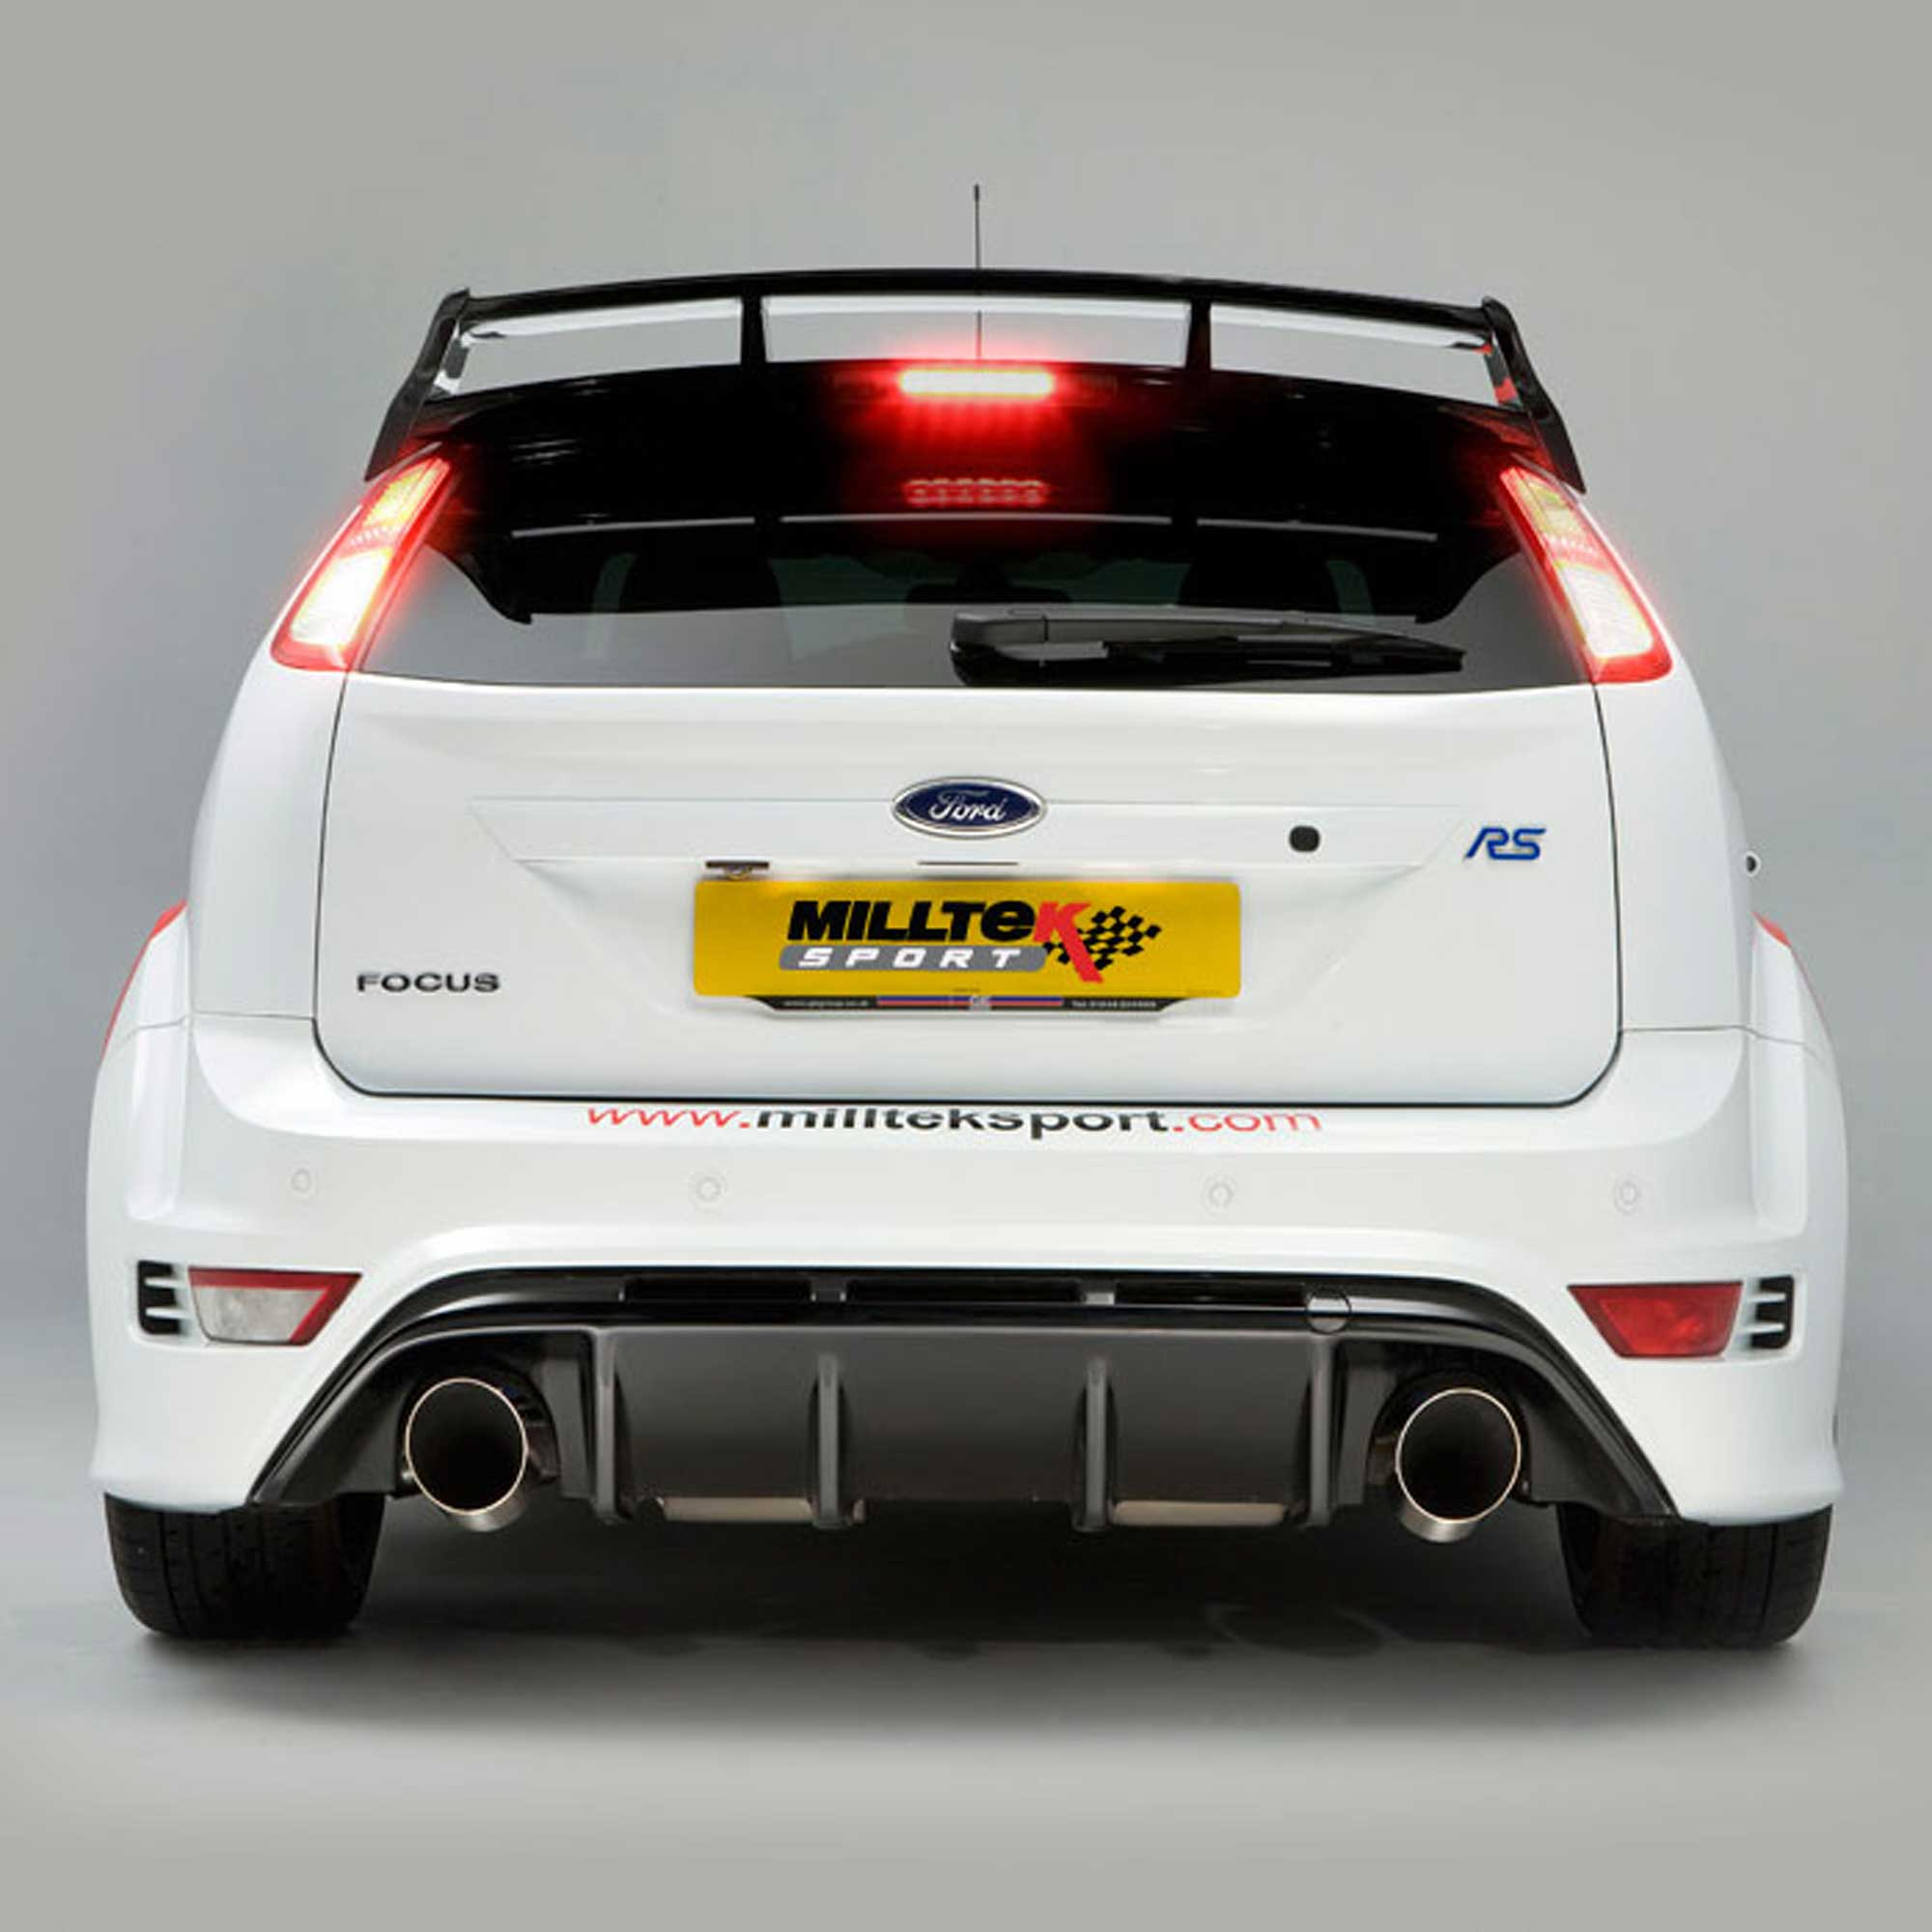 Details About Milltek Resonated Cat Back Exhaust For Ford Focus Rs Mk2 2 5t 09 10 Ssxfd070